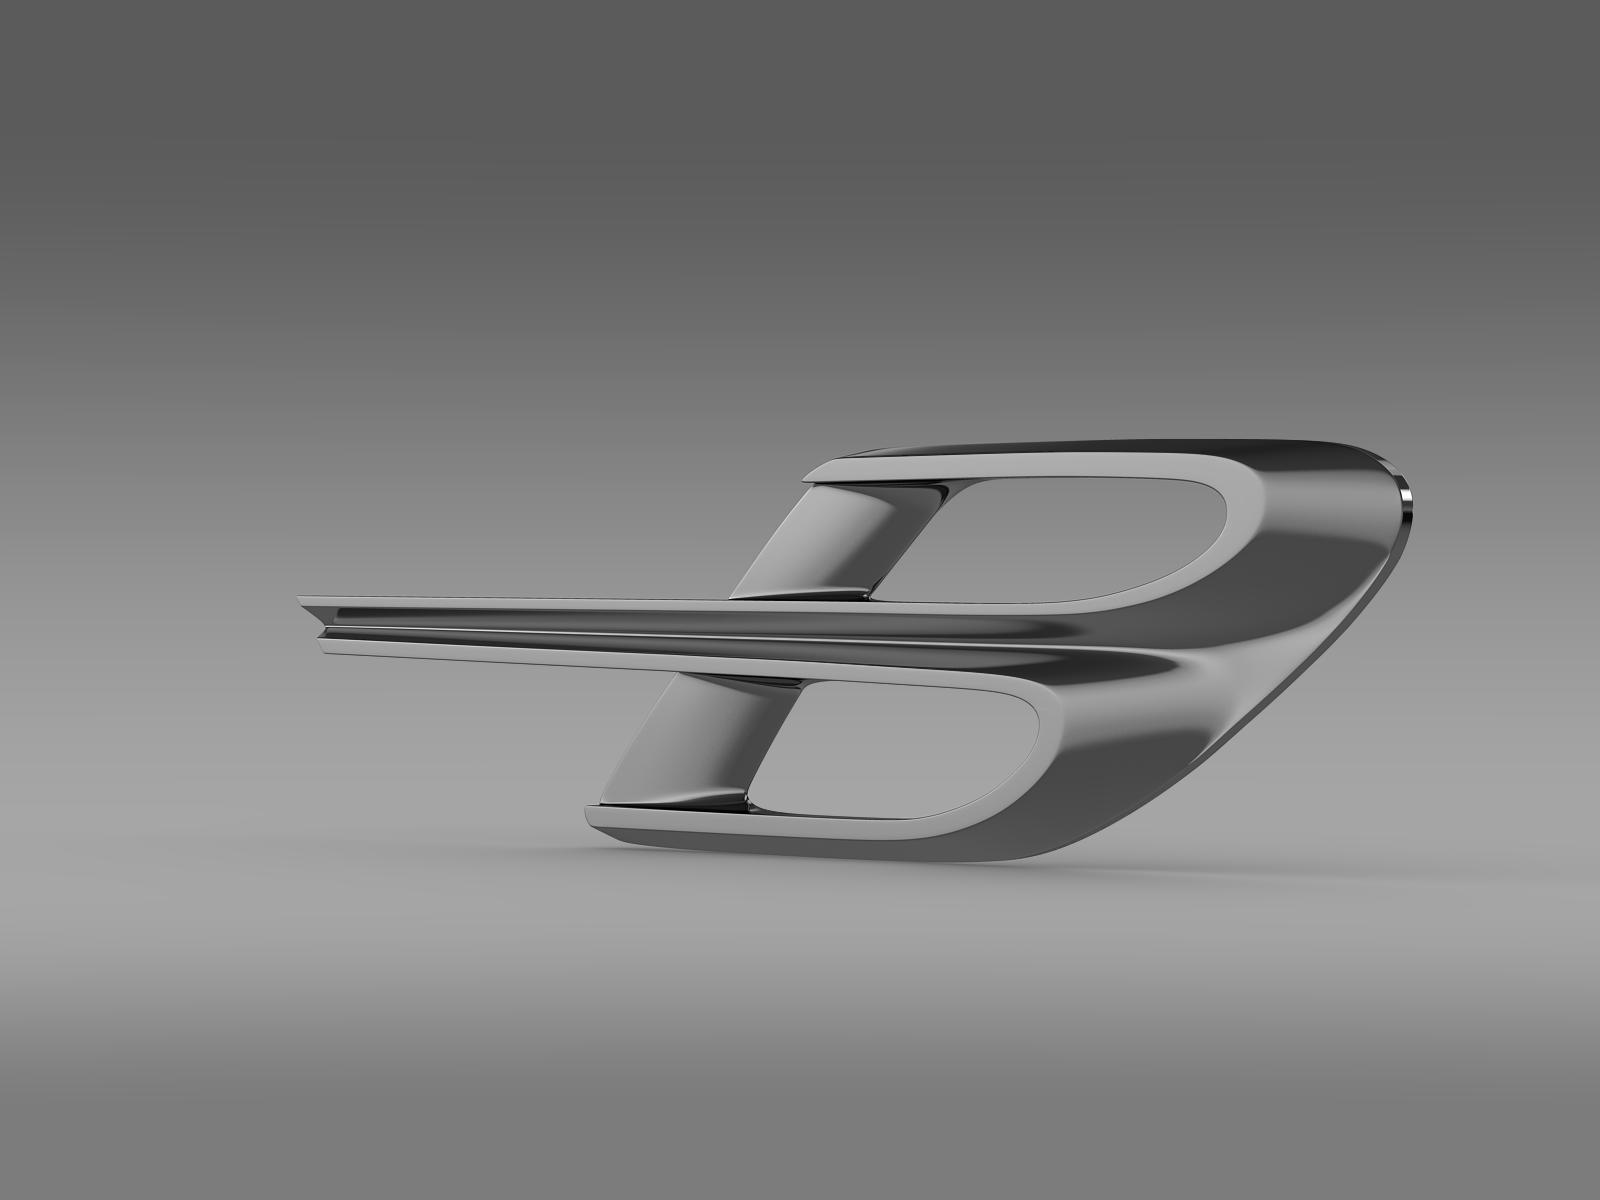 bentley logo 3d model 3ds max fbx c4d lwo ma mb hrc xsi obj 208221